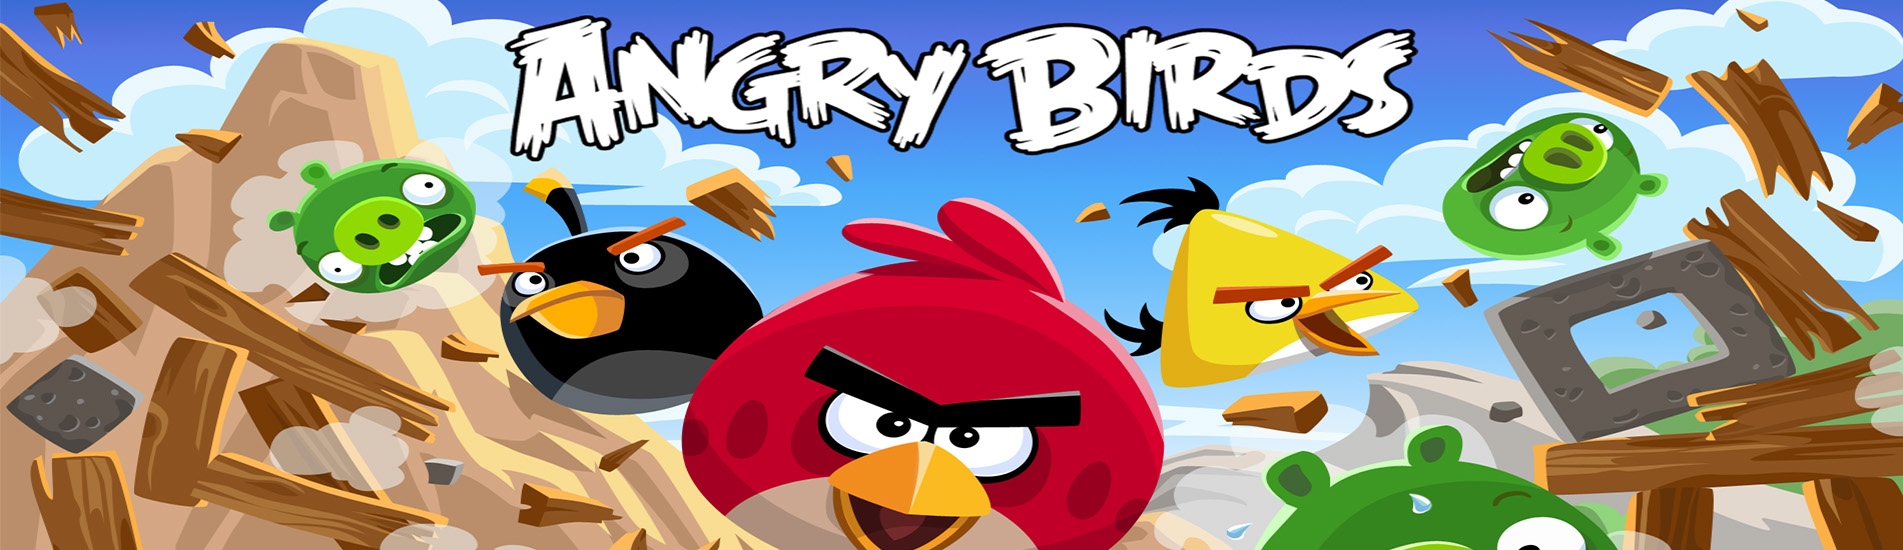 Premier slide angry birds simple